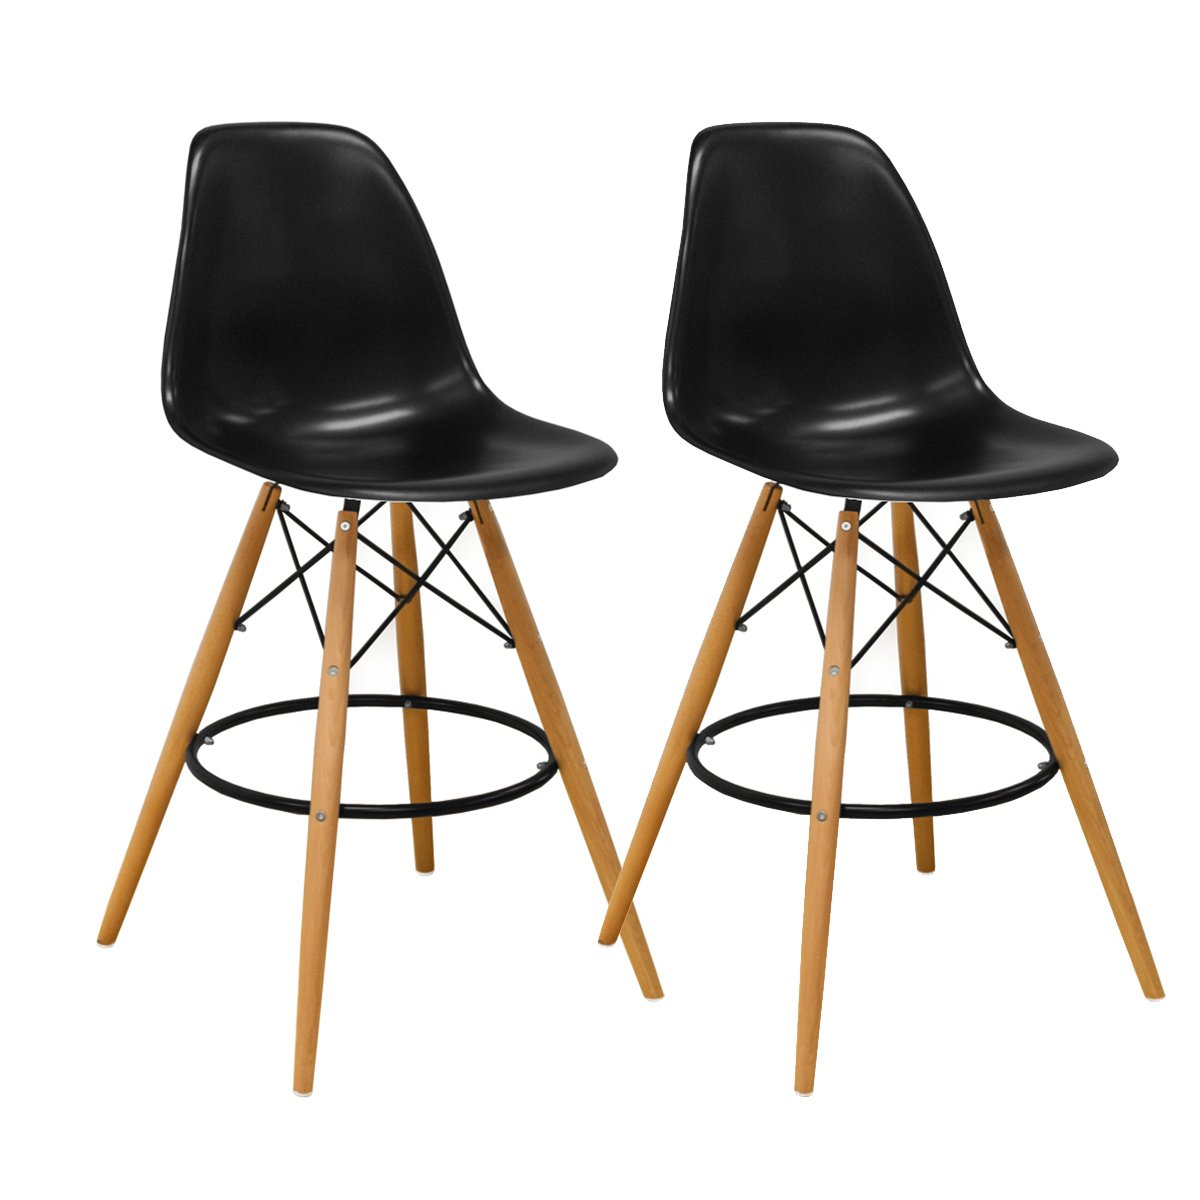 Black Kitchen Bar Stools Uk: Kitchen Bar Stools: Amazon.ca